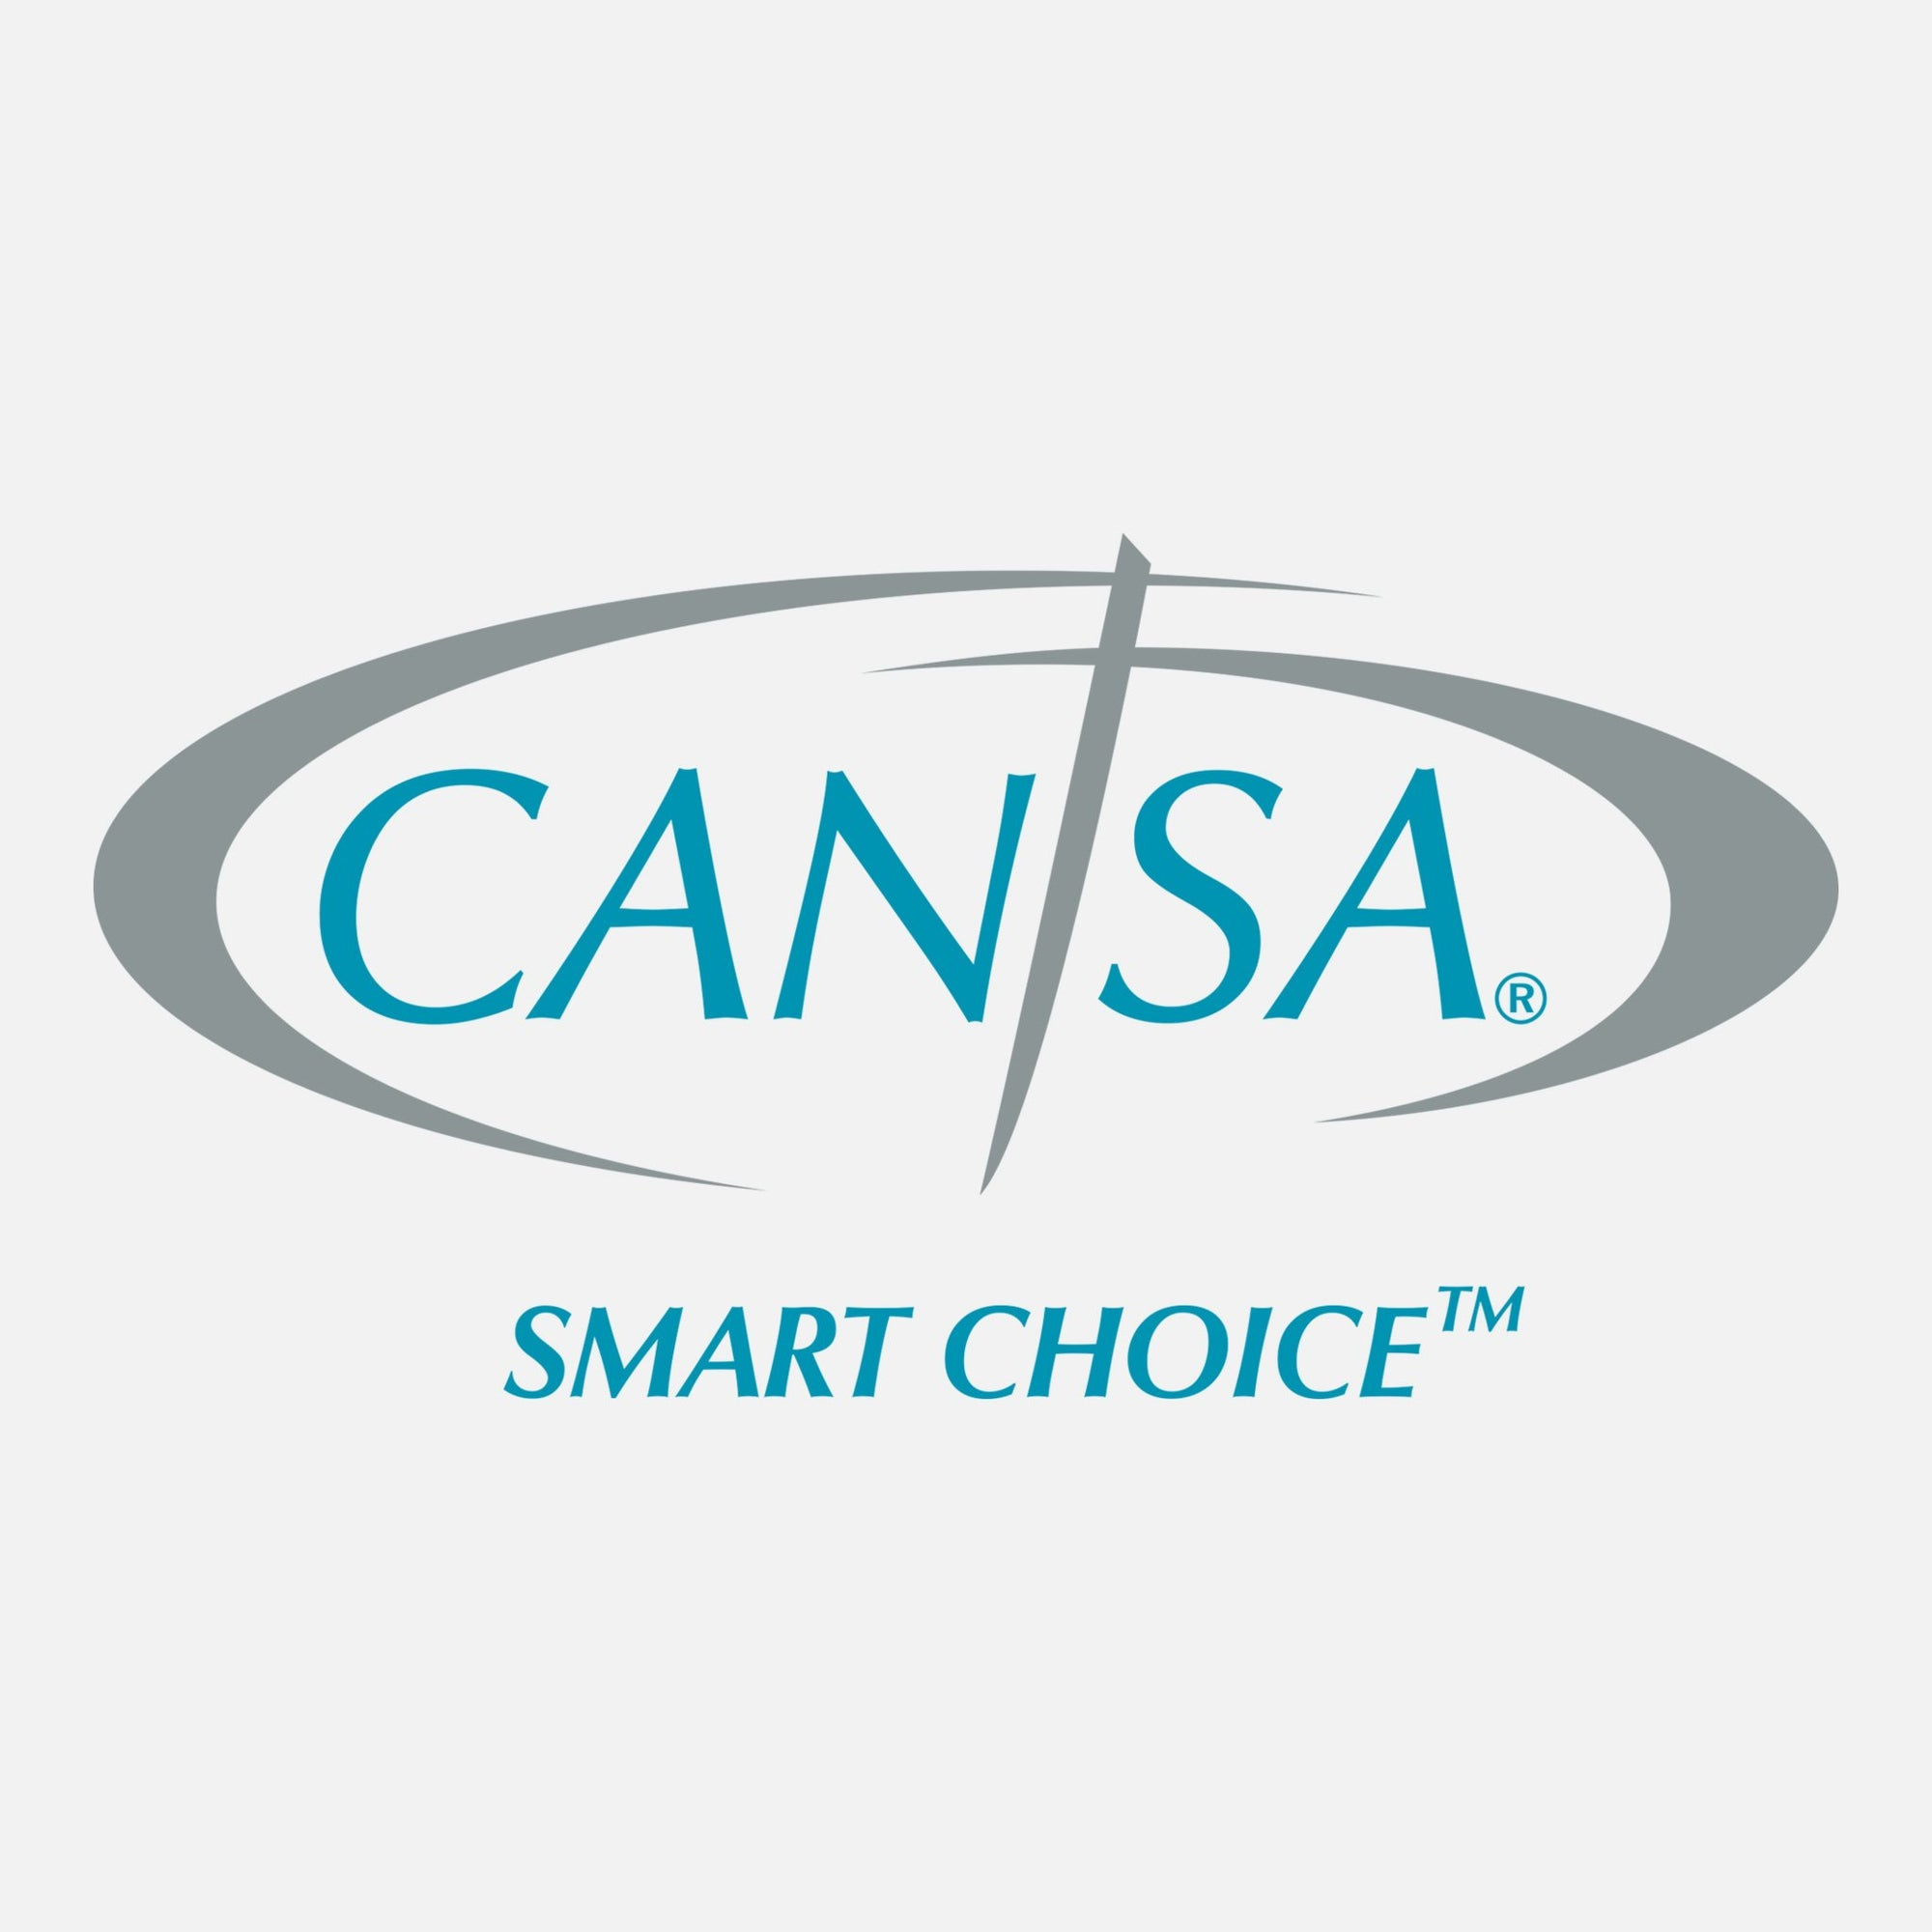 red espresso® is a CANSA Smart Choice Product